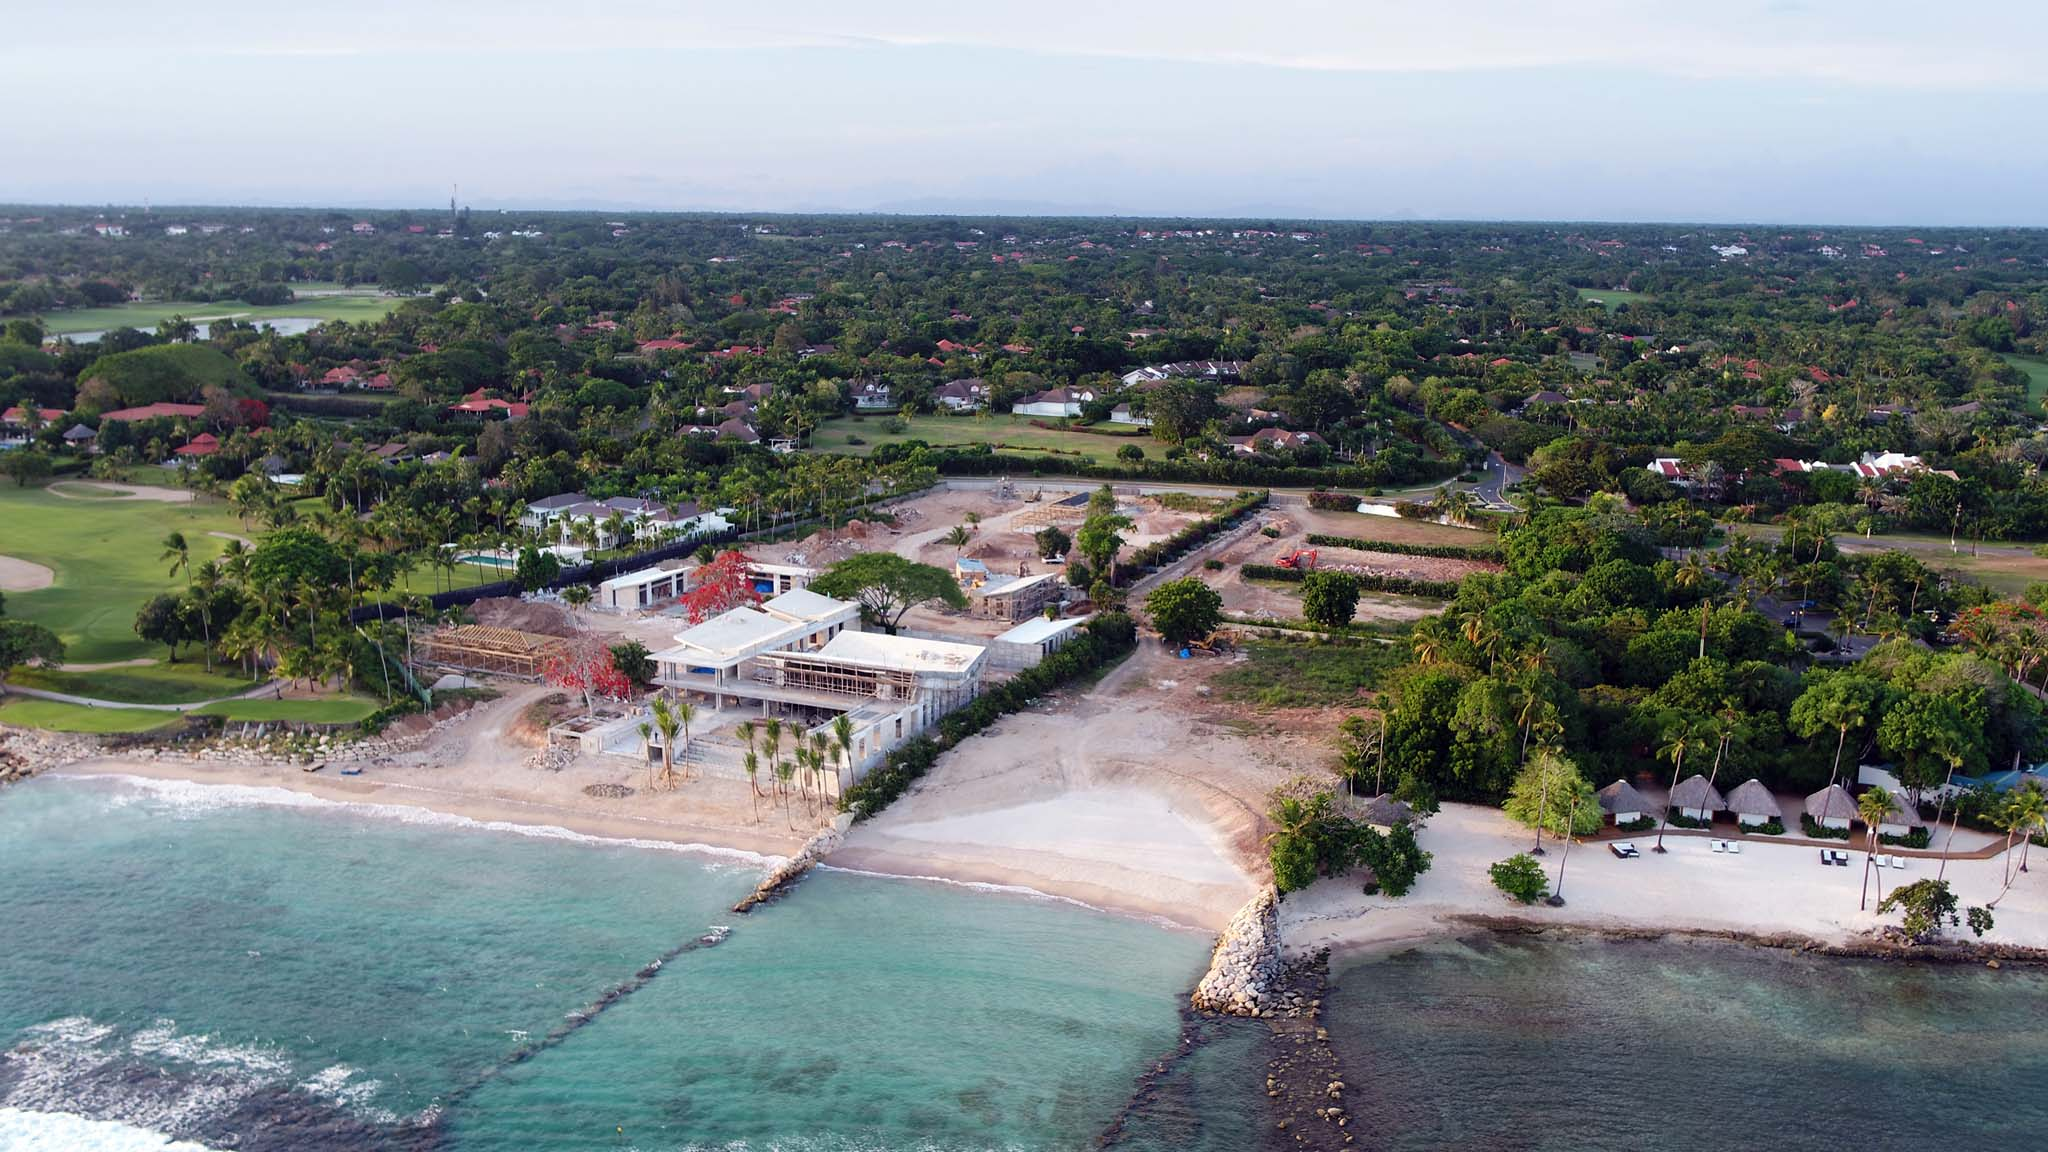 Land for Sale at Sprawling Oceanfront home site with Private Beach Casa De Campo, La Romana, Dominican Republic